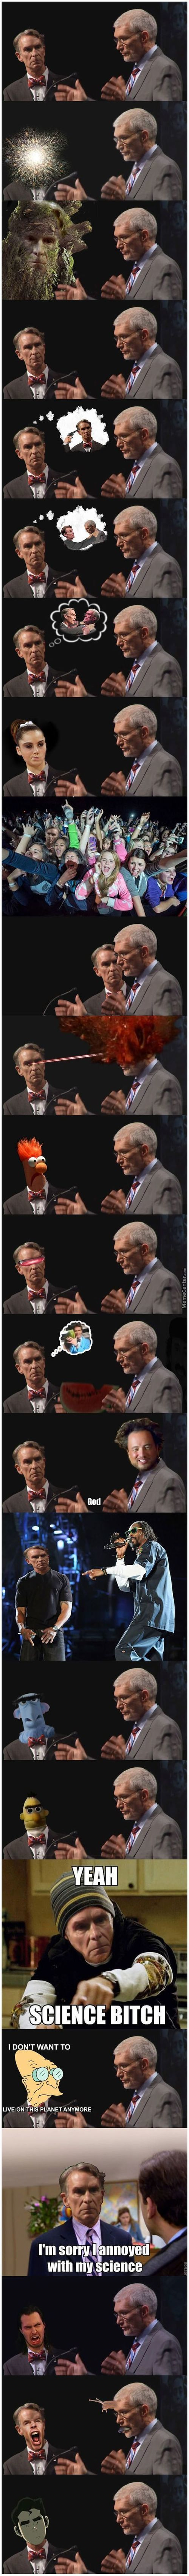 Bill Nye And Ken Ham Debate Compilation... What Do You Mean It Was Two Months Ago?